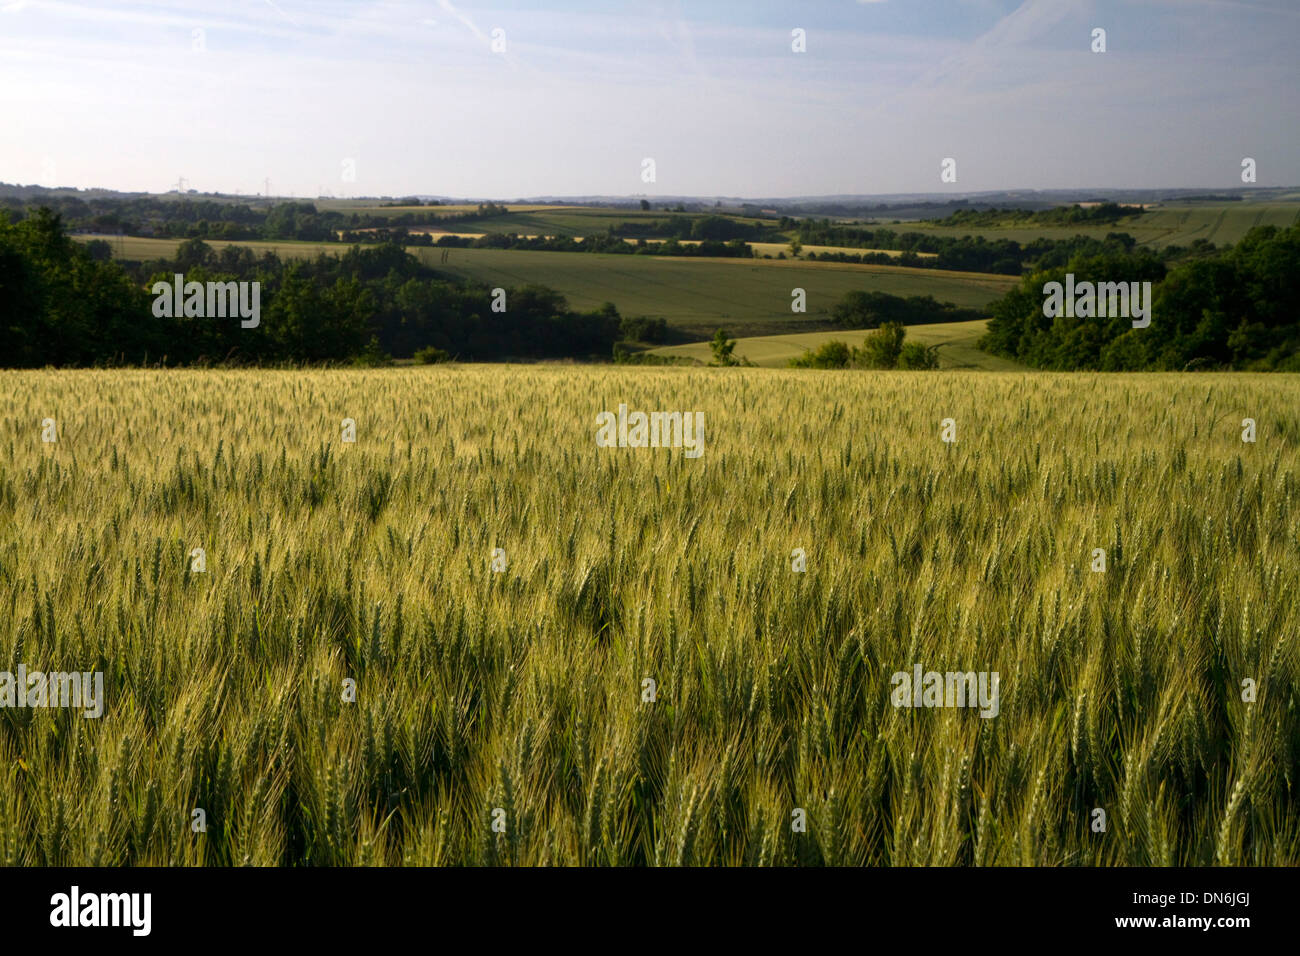 Wheat field west of Angouleme in southwestern France. - Stock Image